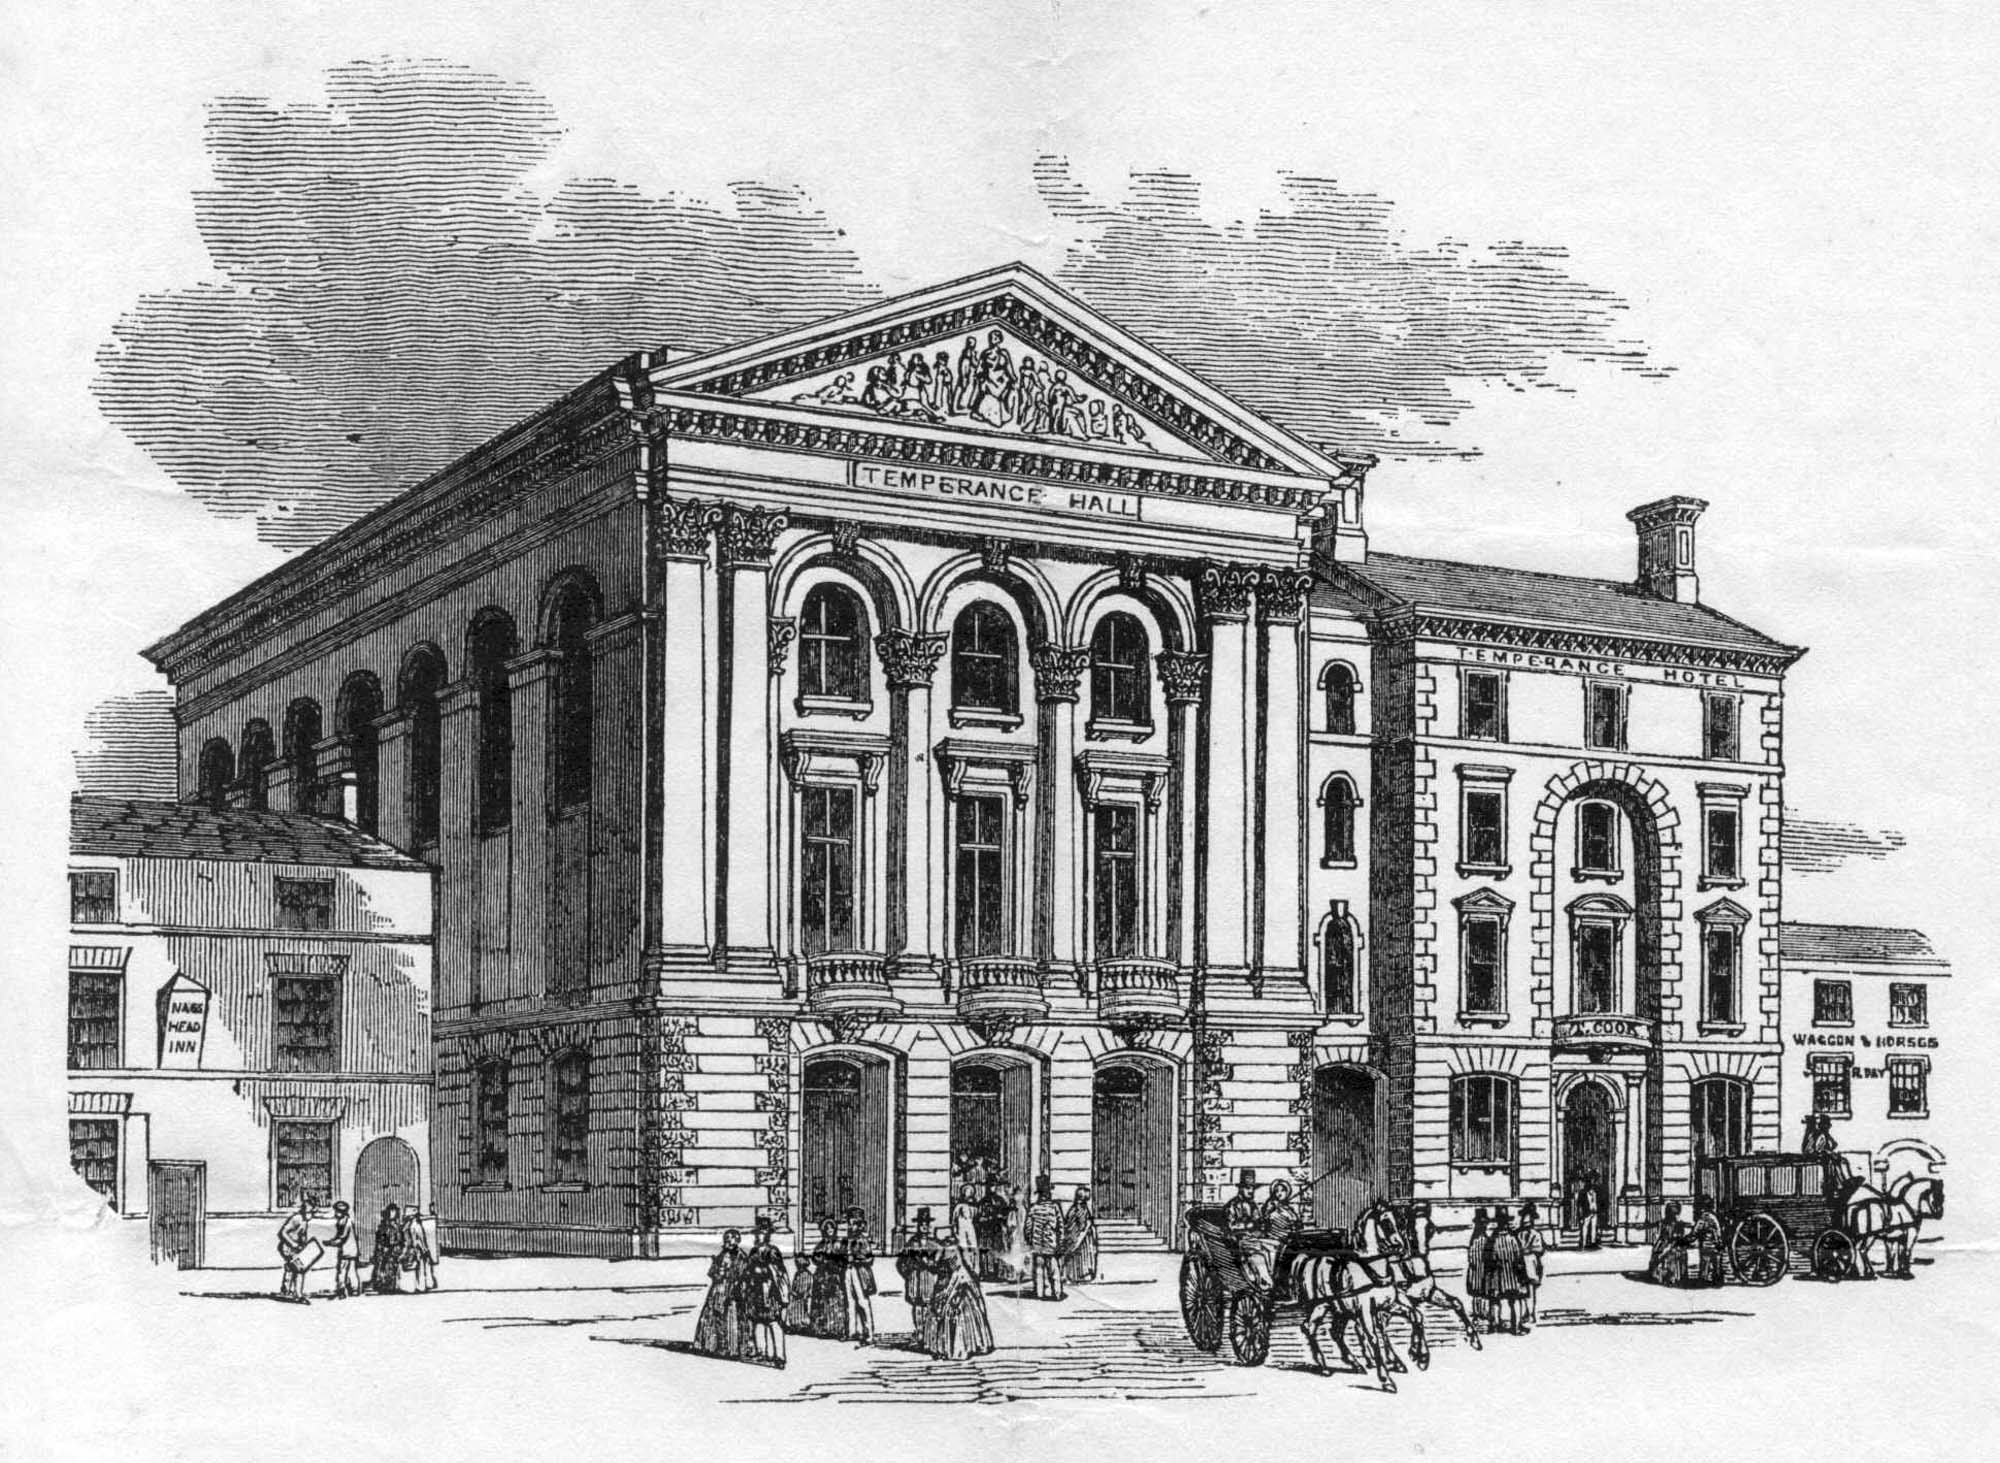 An etching of the Temperance Hotel and Hall - Thomas Cook Archives